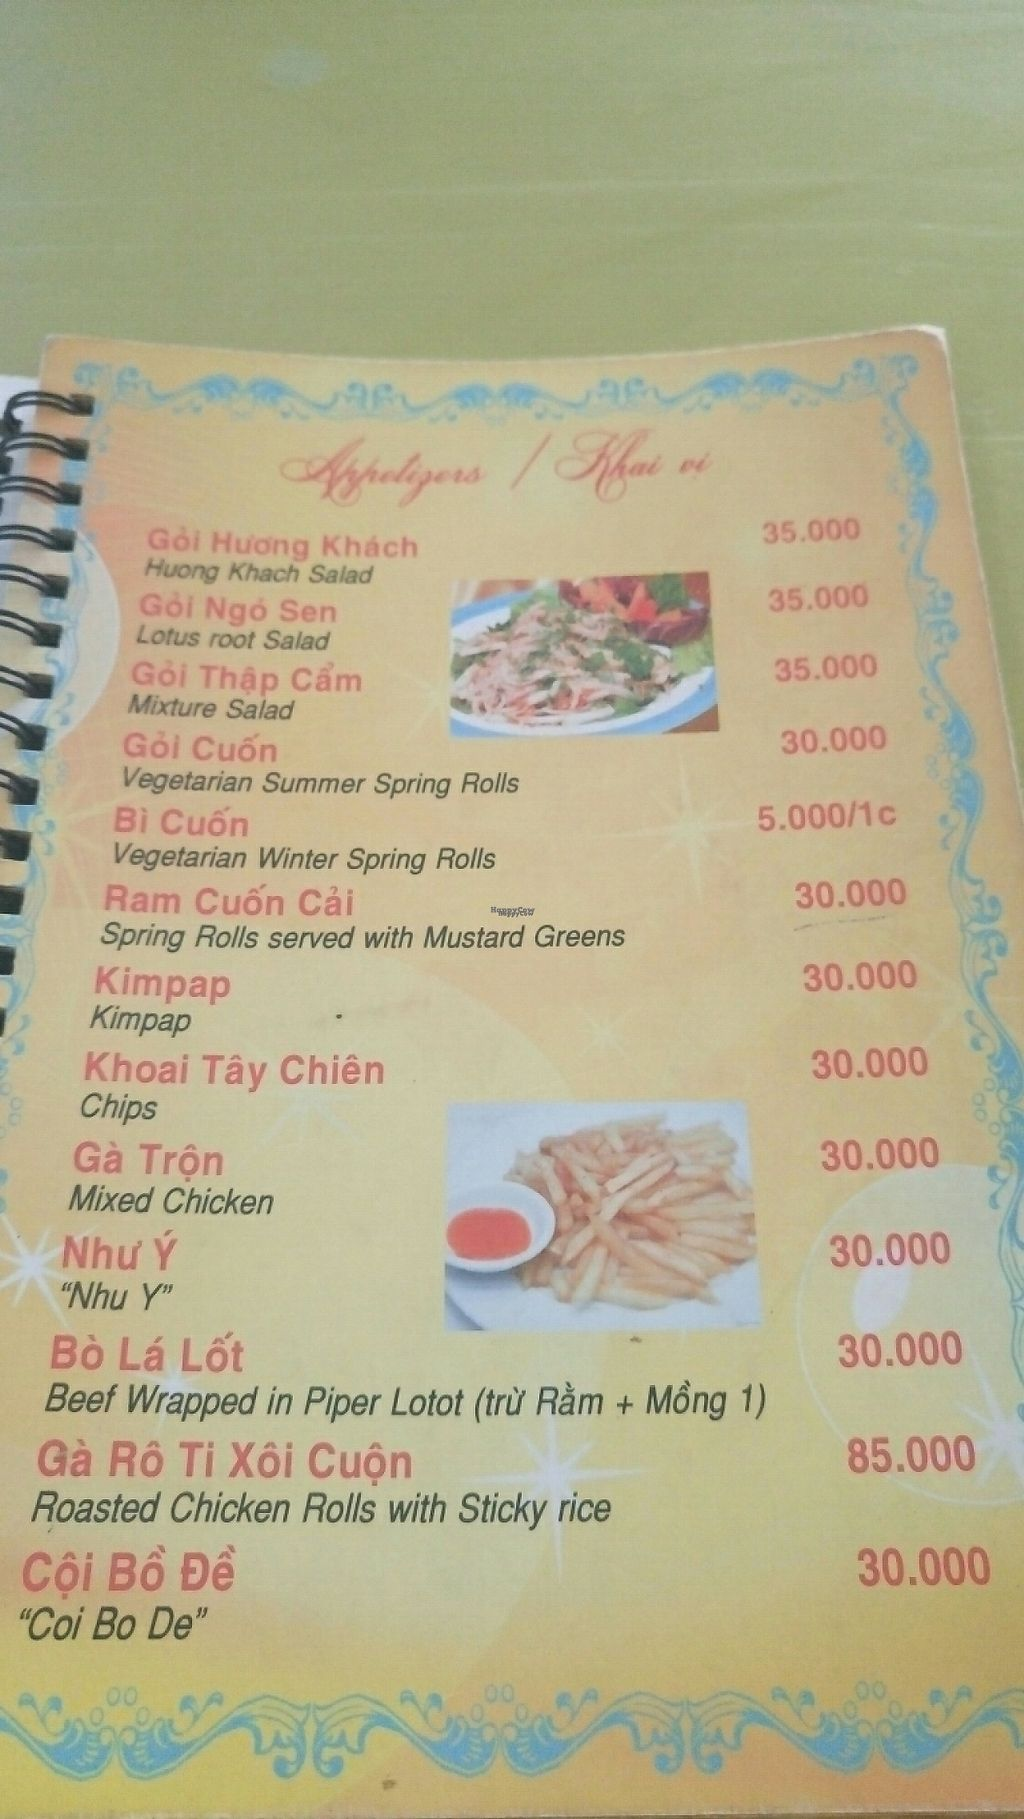 """Photo of CLOSED: Huong Khach  by <a href=""""/members/profile/CherylKqy"""">CherylKqy</a> <br/>huong khach salad  <br/> April 21, 2017  - <a href='/contact/abuse/image/40881/250470'>Report</a>"""